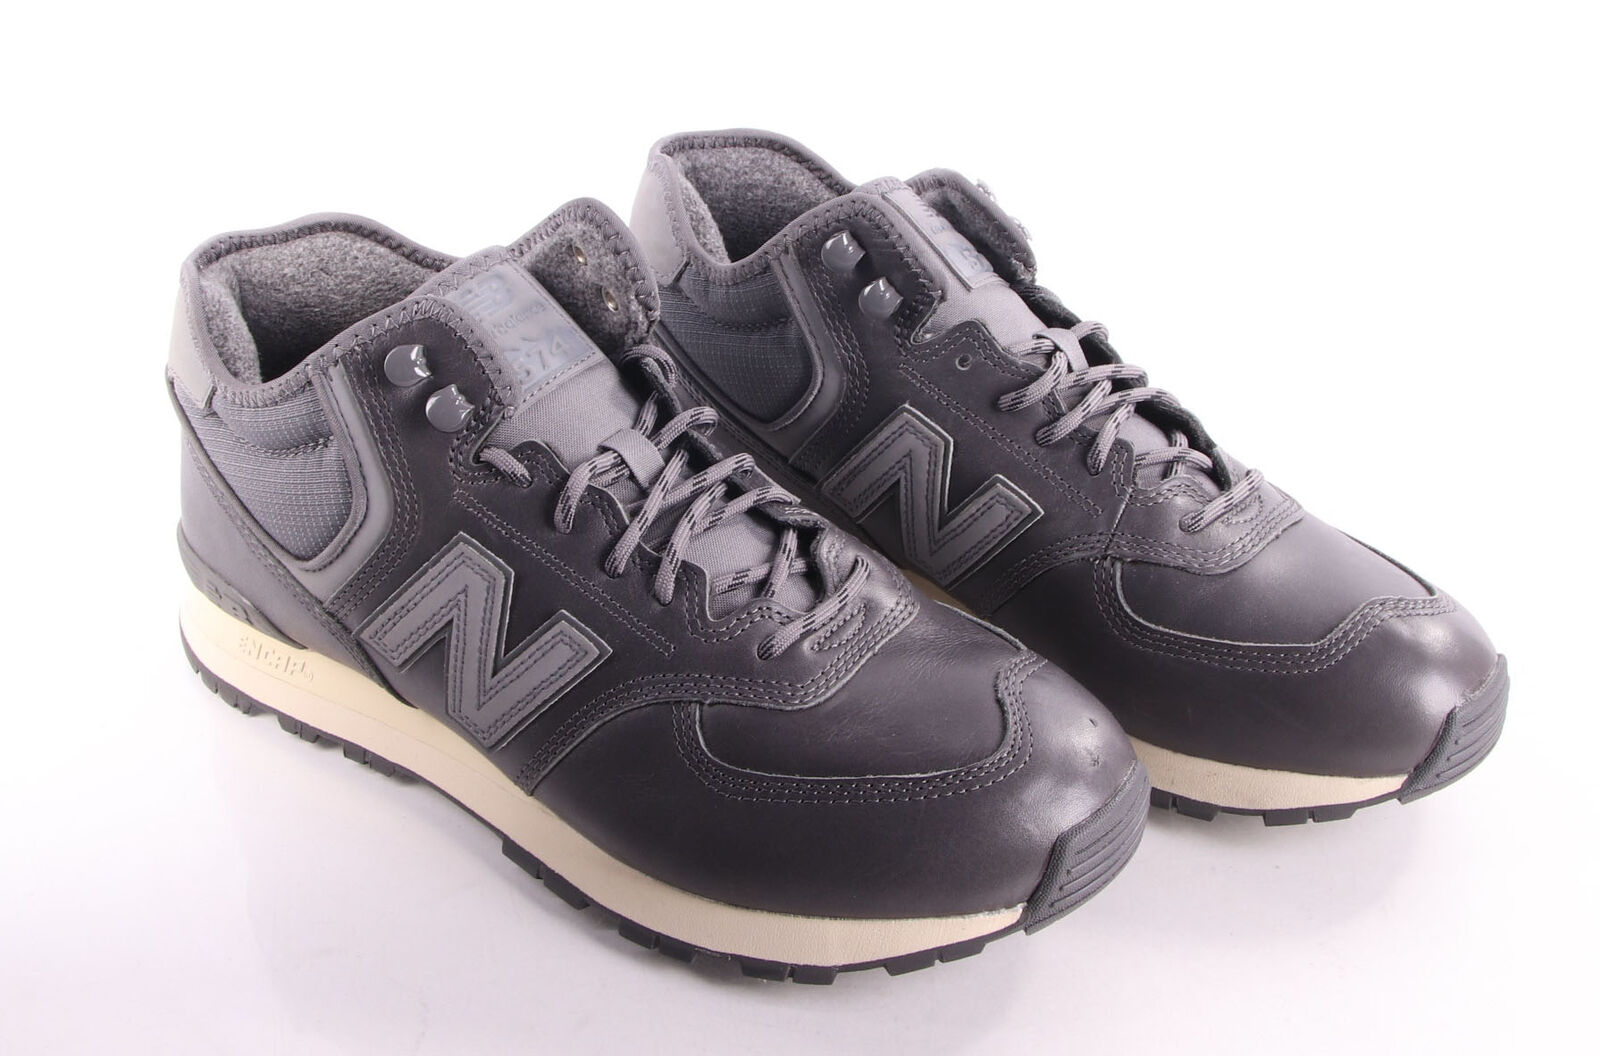 NEW BALANCE Hommes baskets mh574oaa gris taille 45 10,5